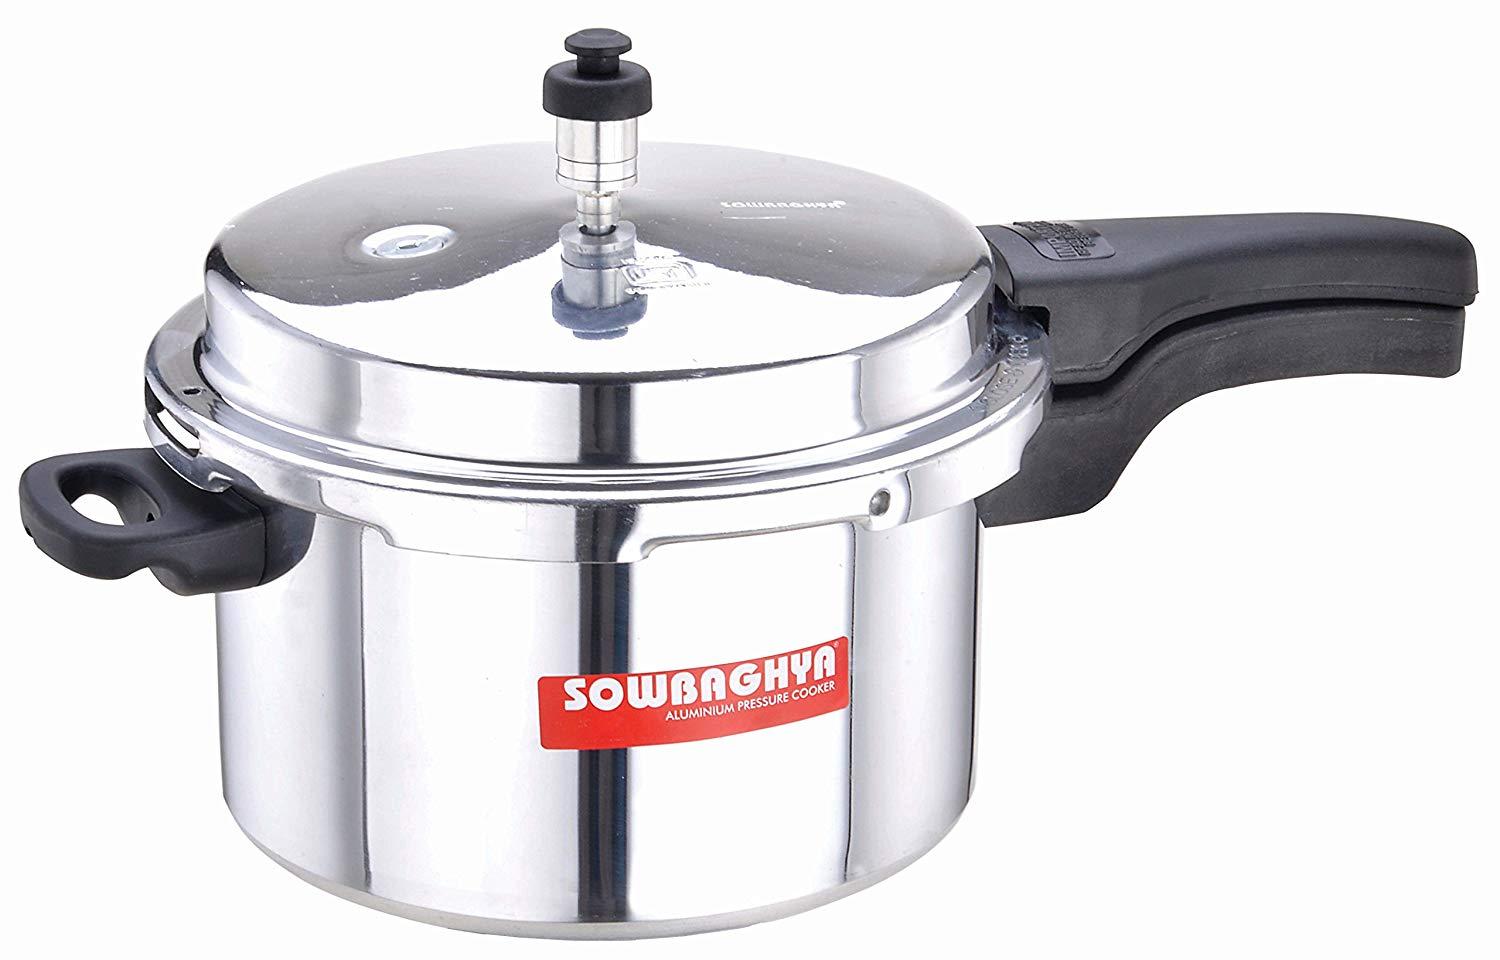 Sowbaghya Elite Aluminium ISI Pressure Cooker (5 litres) get best offers deals free and coupons online at buythevalue.in